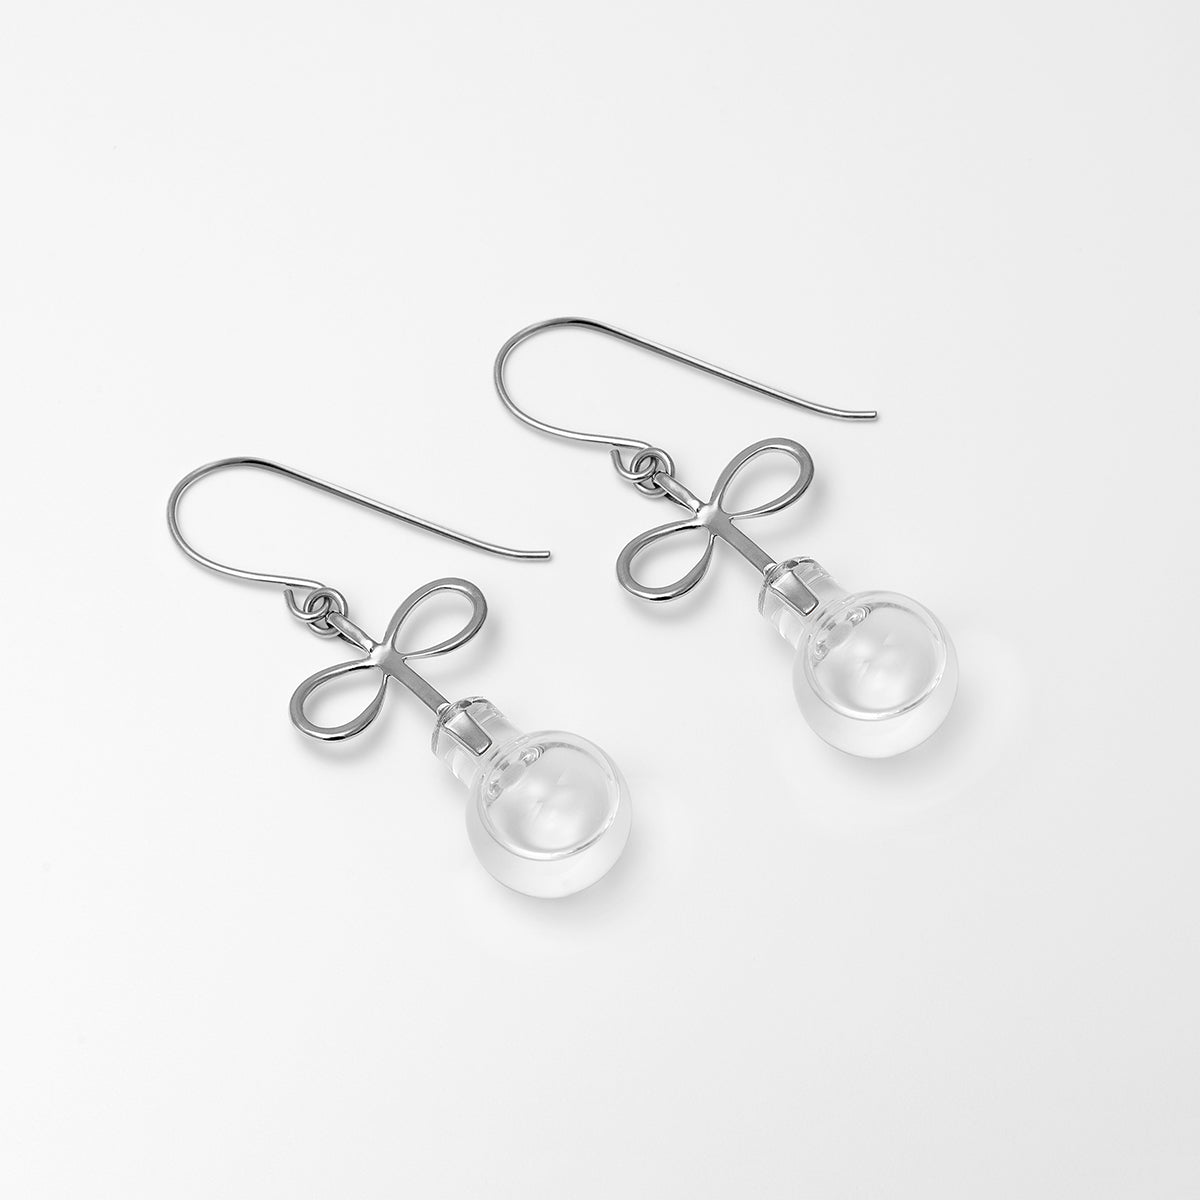 Infinity Water Earrings Silver